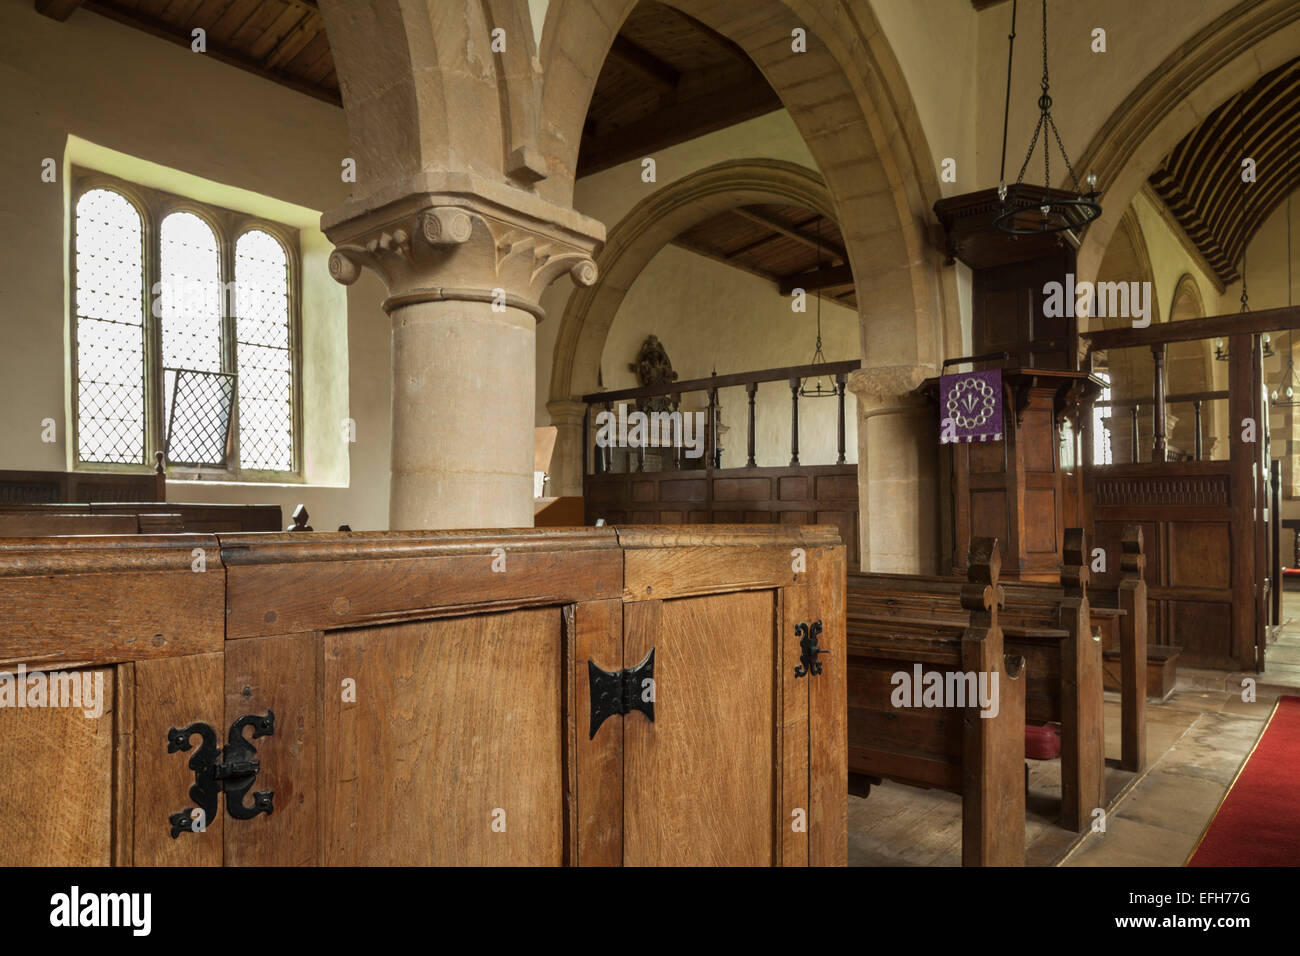 The original Elizabethan interior of St Peter's church in the tiny village of Brooke near Oakham, Rutland, England - Stock Image